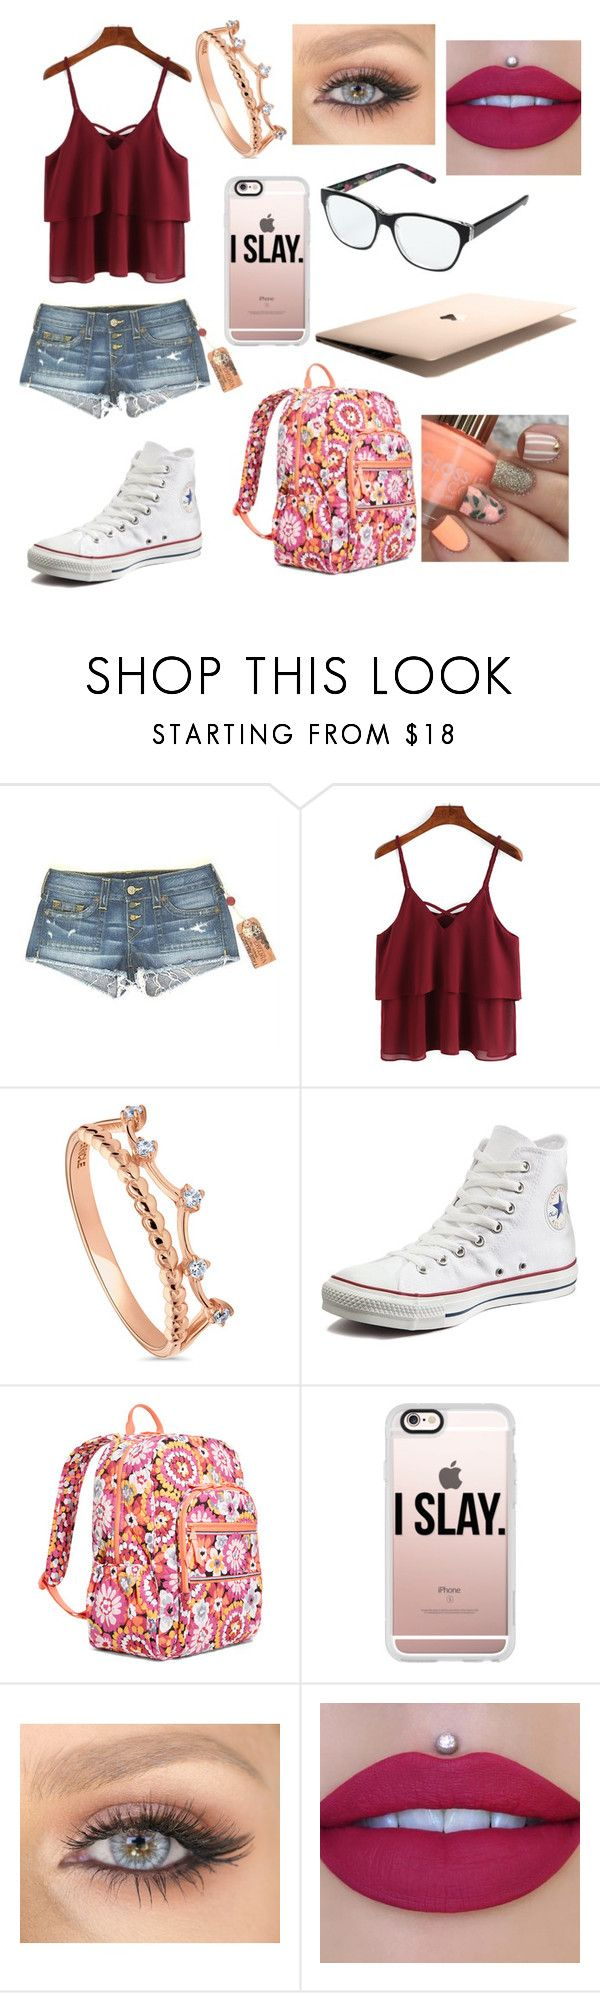 """""""Untitled #81"""" by lexinichols0520 on Polyvore featuring beauty, True Religion, BERRICLE, Converse, Vera Bradley and Casetify"""